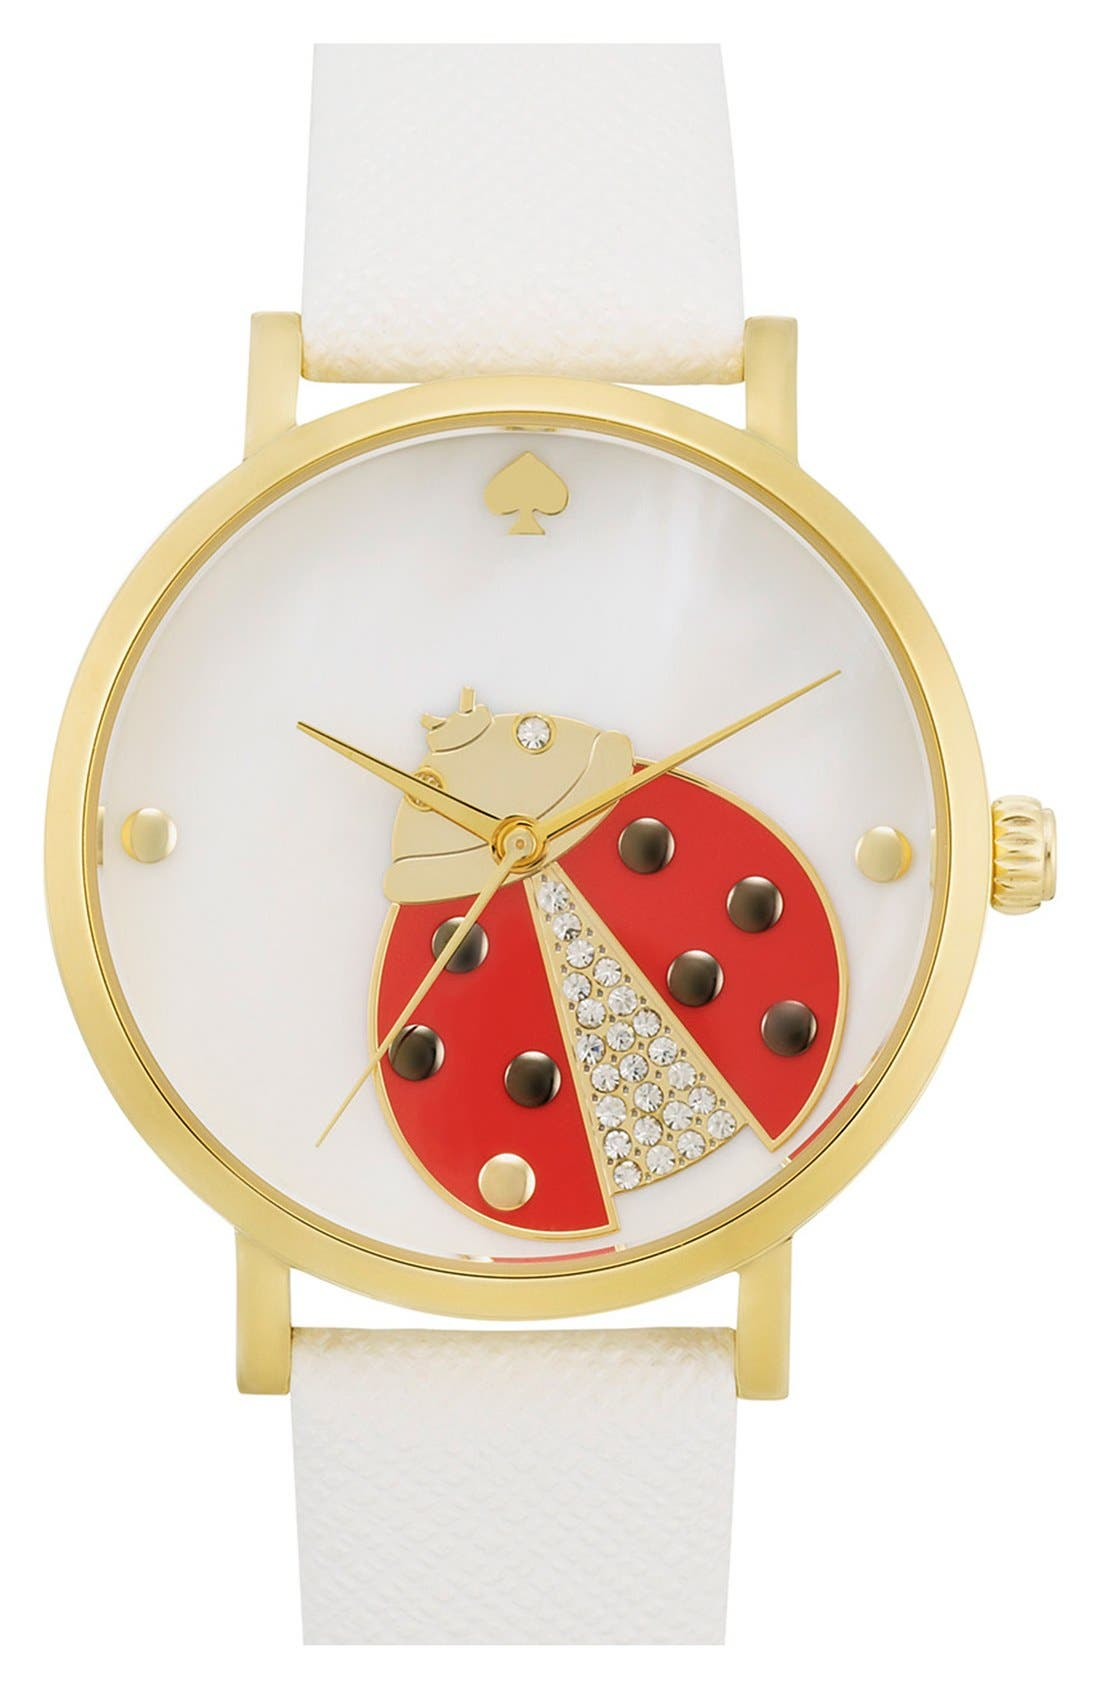 Main Image - kate spade new york 'metro' ladybug dial leather strap watch, 34mm